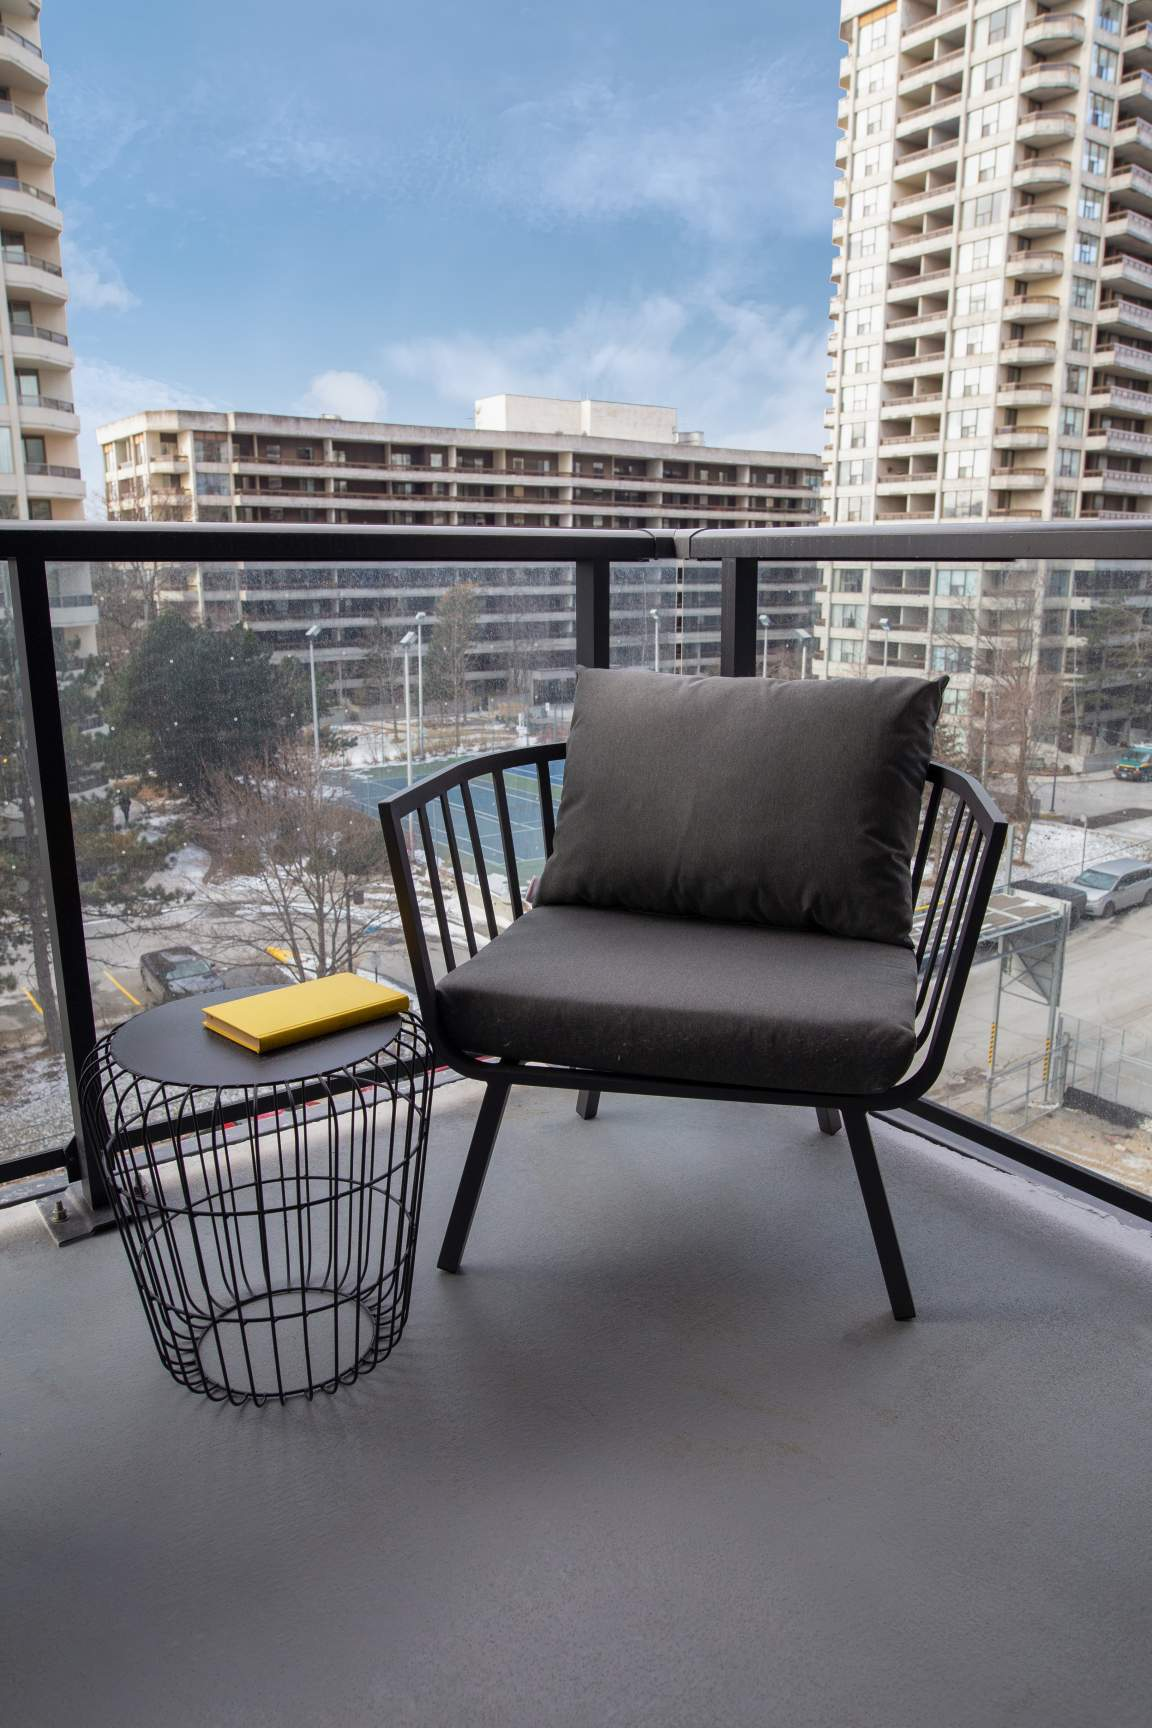 1 bedroom apartments for rent Toronto at The Livmore High ...